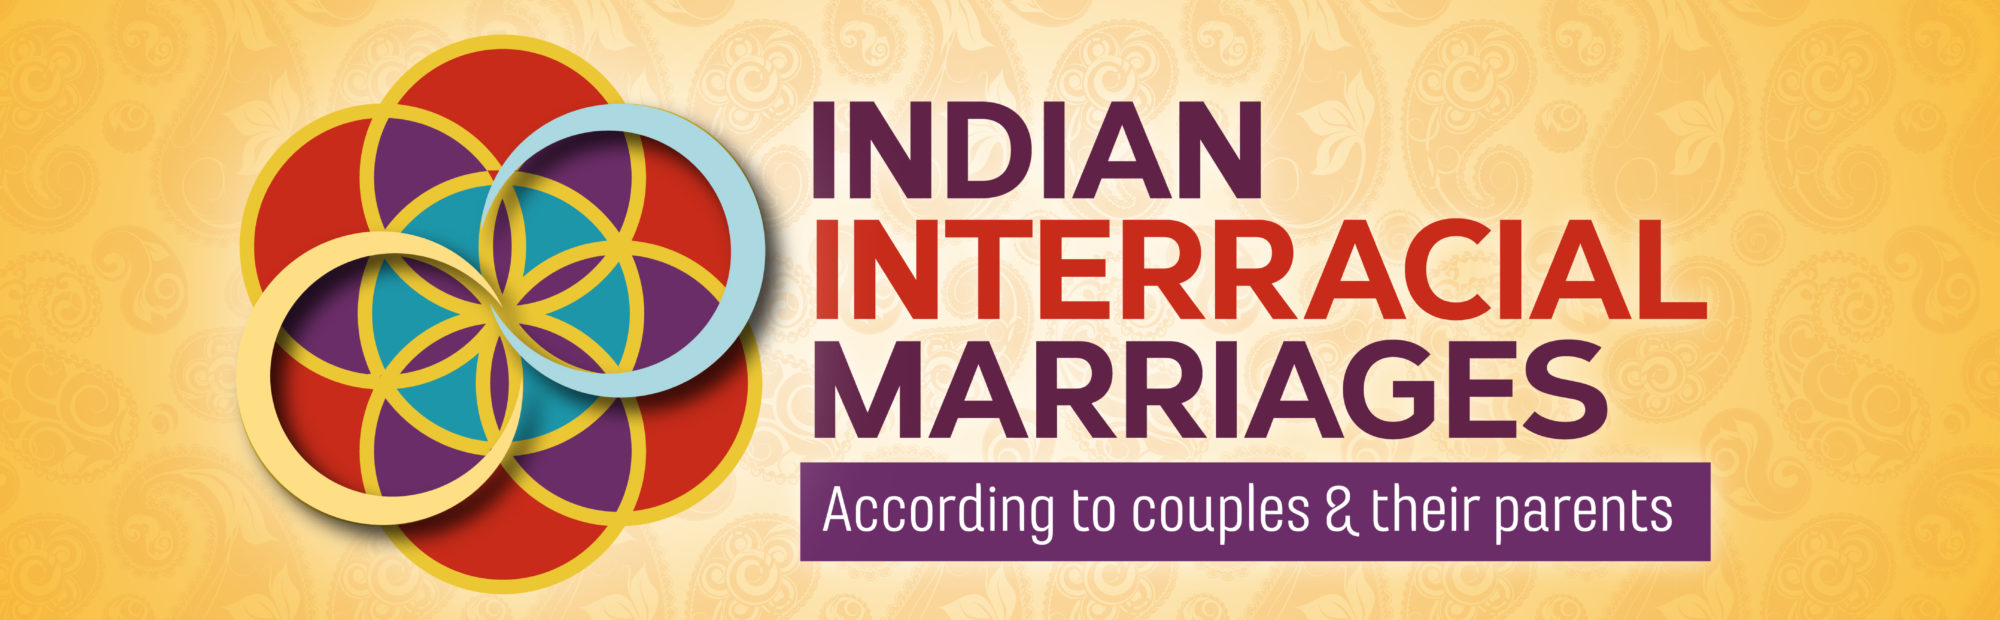 Indian Interracial Marriages Podcast